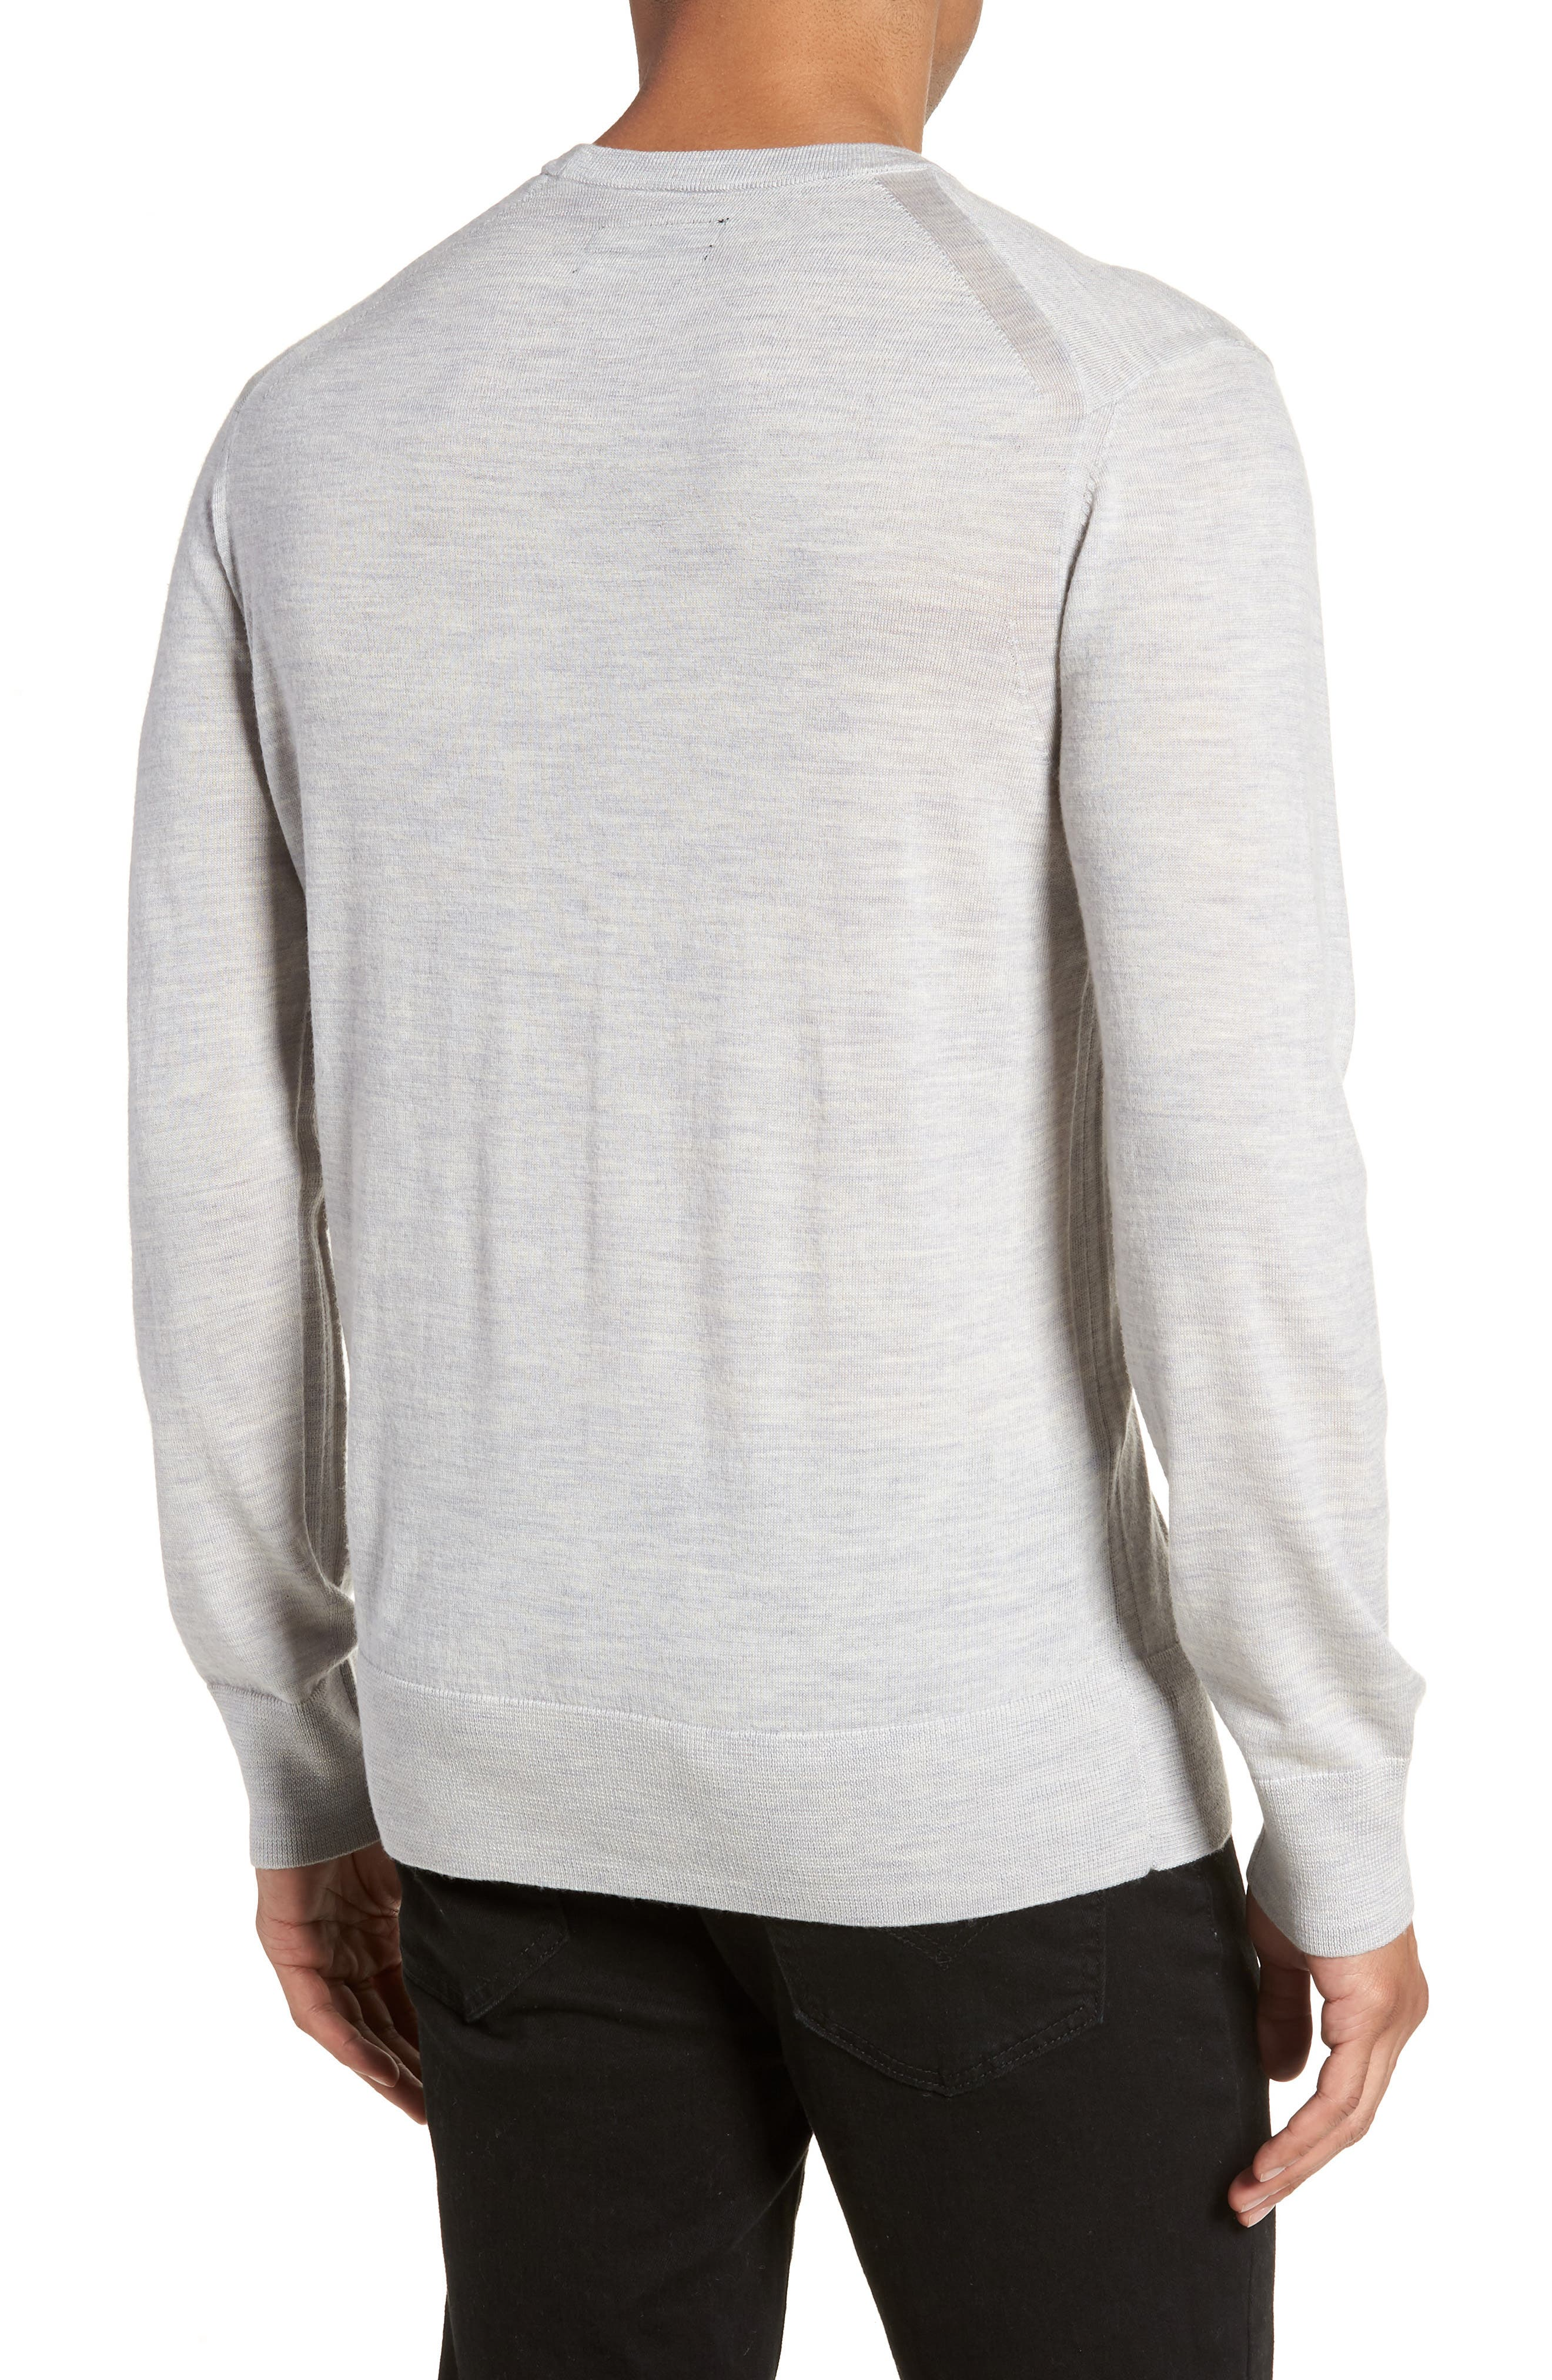 Lang Crewneck Wool Sweater,                             Alternate thumbnail 2, color,                             Light Grey Marl